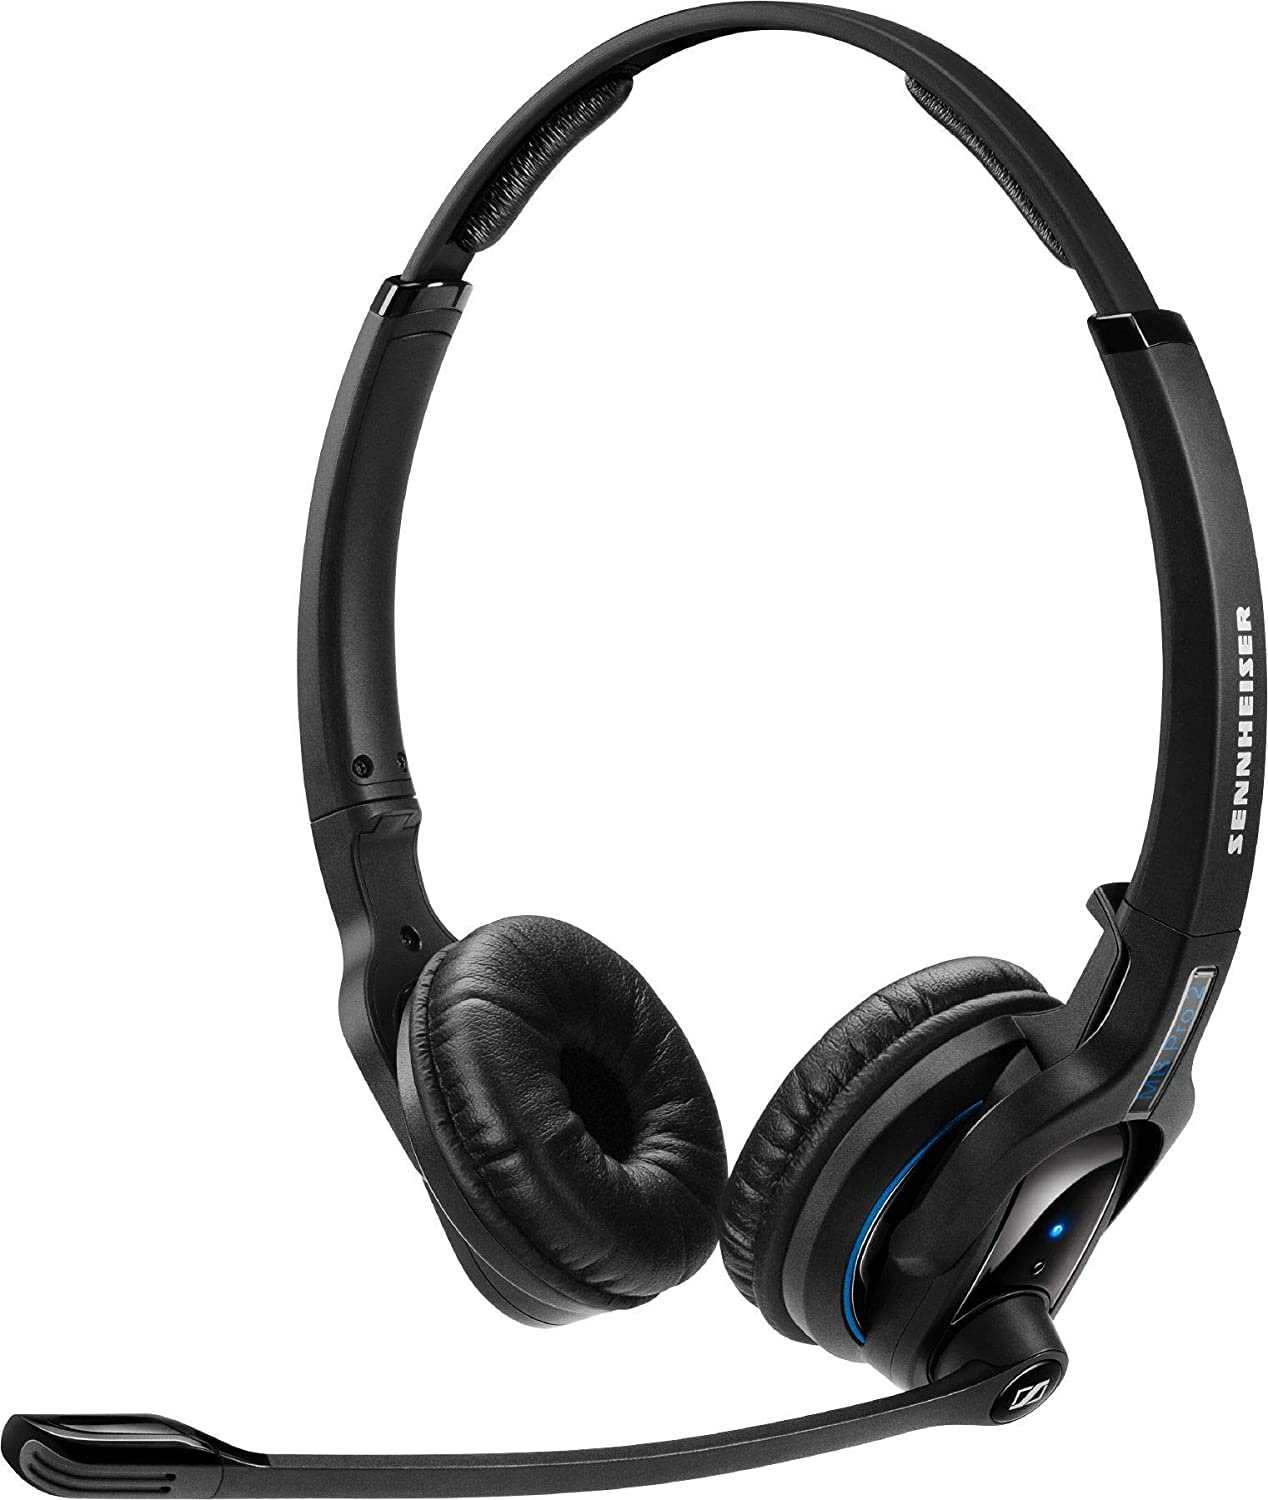 Sennheiser MB Pro 2 UC ML (506046) - Dual-Sided, Dual-Connectivity, Wireless Bluetooth Headset | For Desk/Mobile Phone & Softphone/PC Connection| w/ HD Sound & Skype for Business Certified (Black) Sennheiser Enterprise Solutions